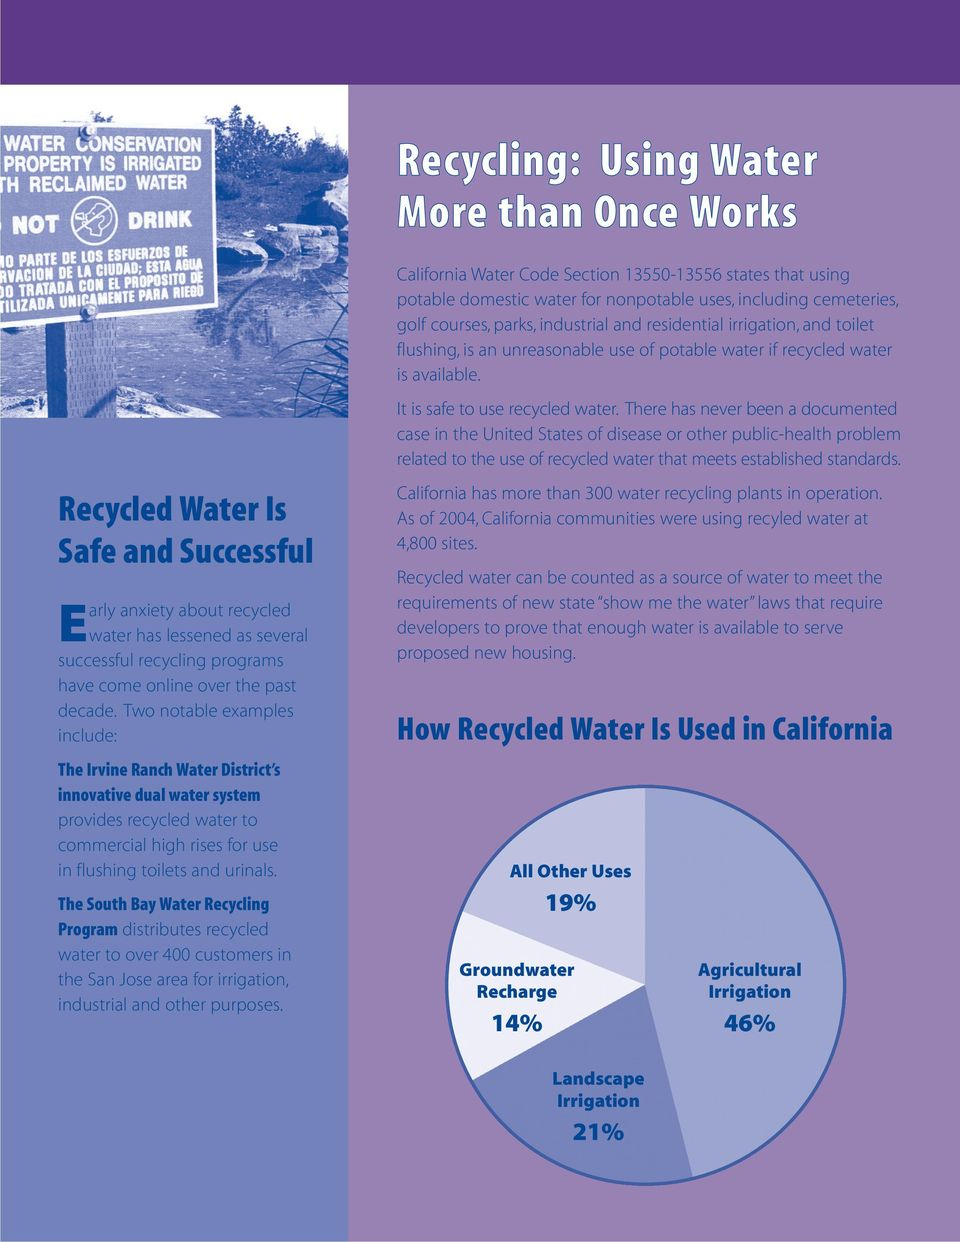 The South Bay Water Recycling Program distributes recycled water to over 400 customers in the San Jose area for irrigation, industrial and other purposes.